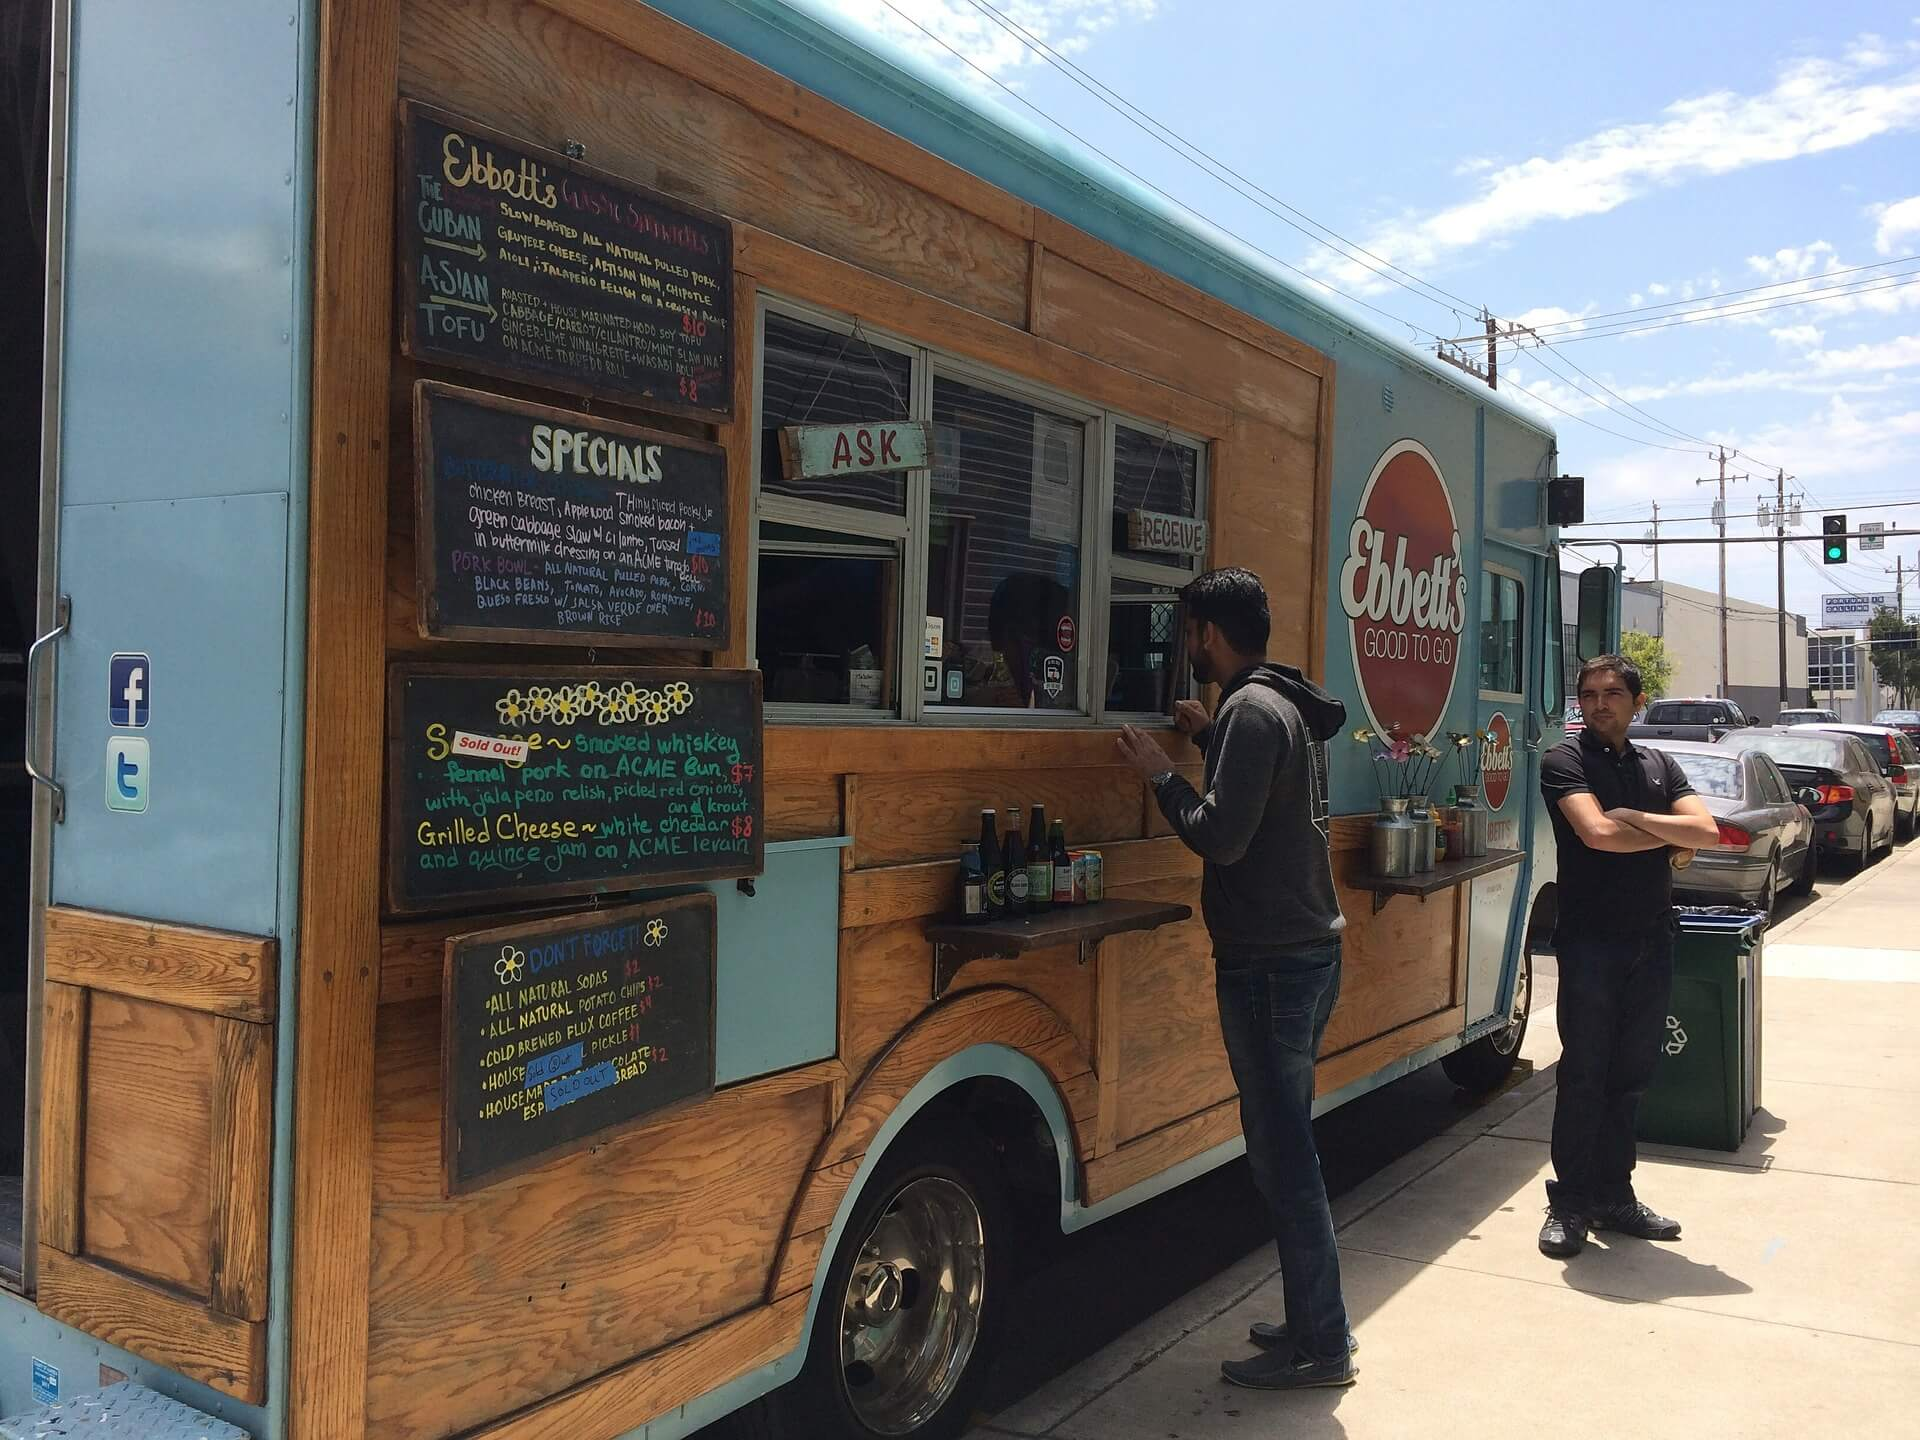 Food Truck vs Franchise: What's best for me?